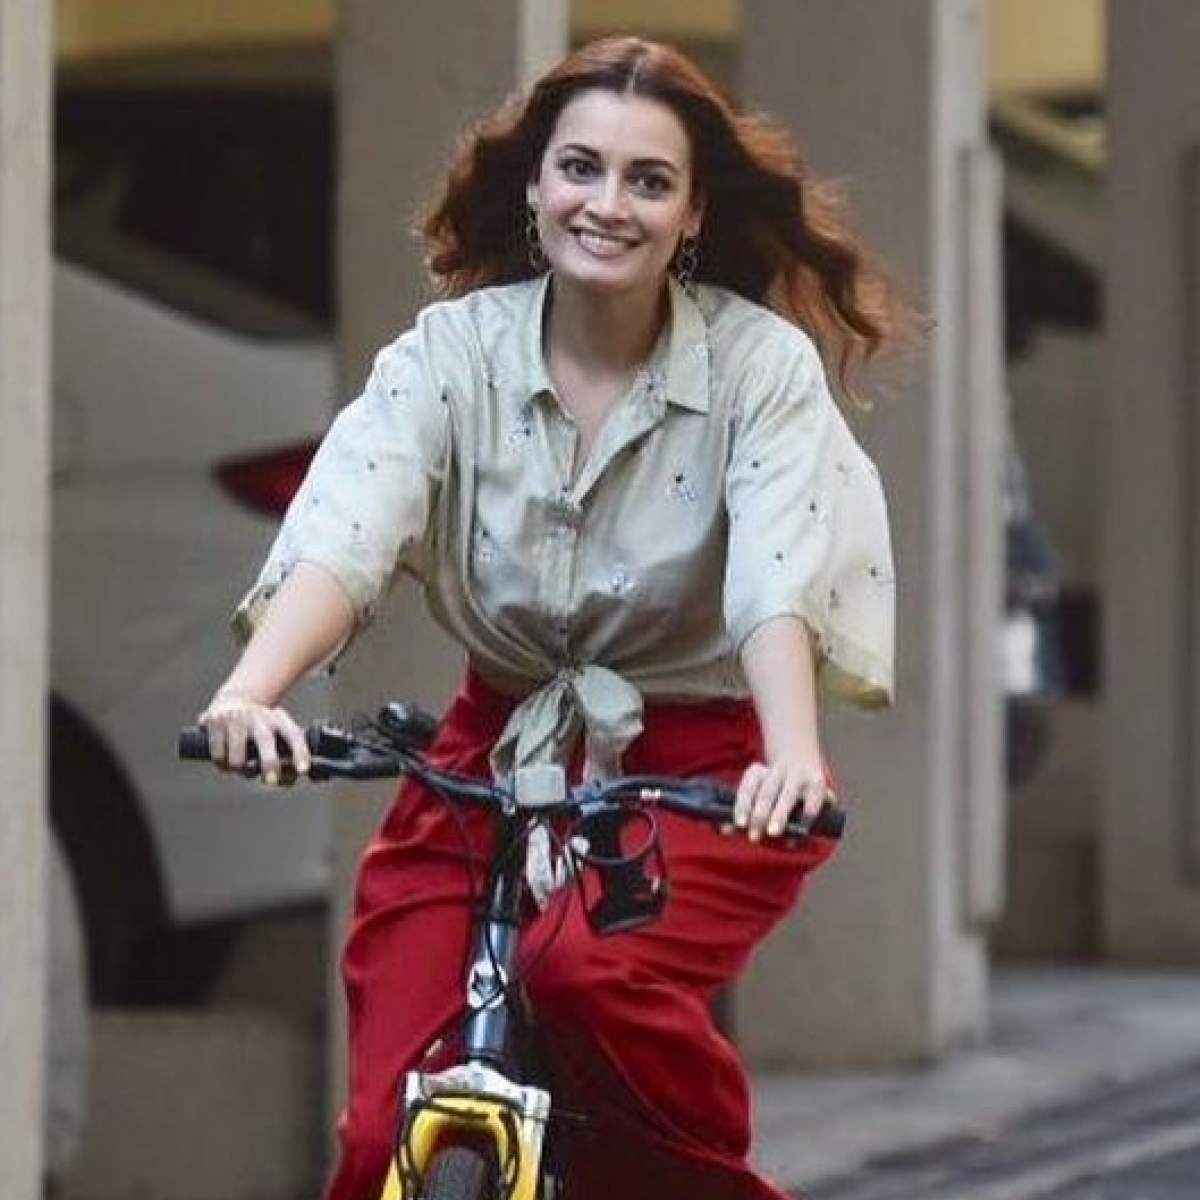 Dia Mirza has an epic reaction to news on penises shrinking because of pollution